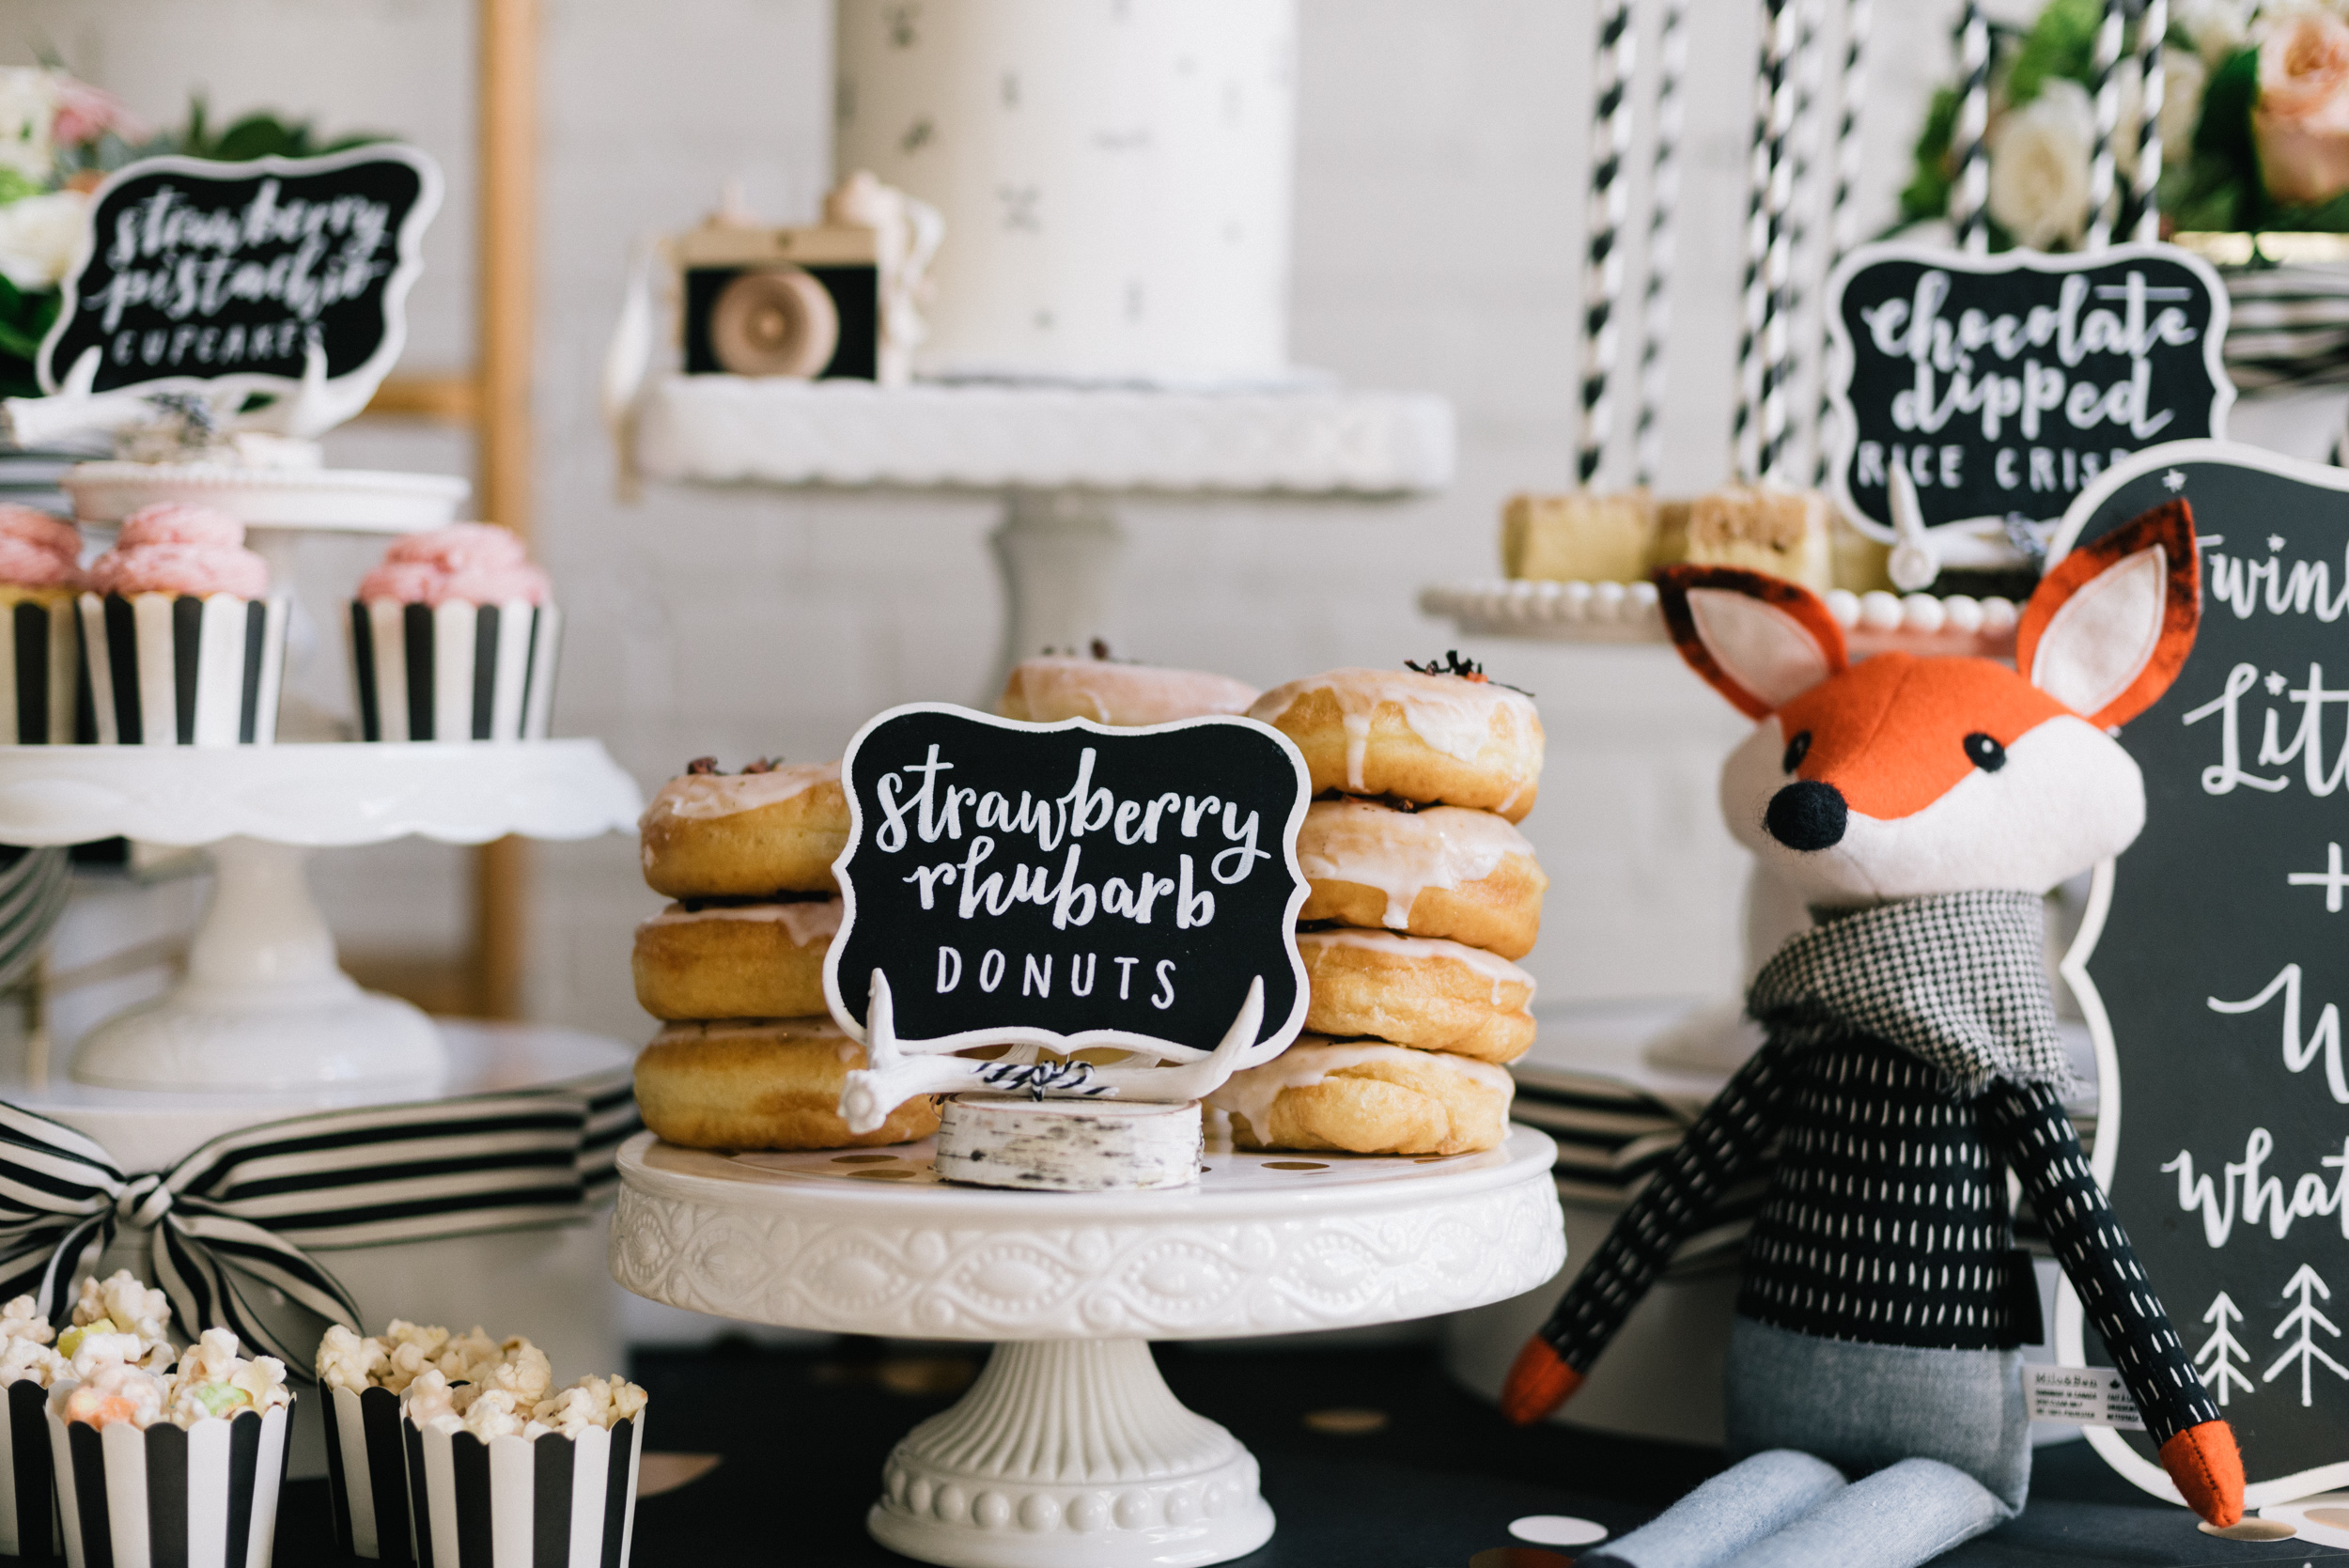 Handlettering by  Love Lettering by Doris Wai  Sweets by  Cakelaine  Fox by  Milo & Ben  Packaging and decor from  Creative Bag